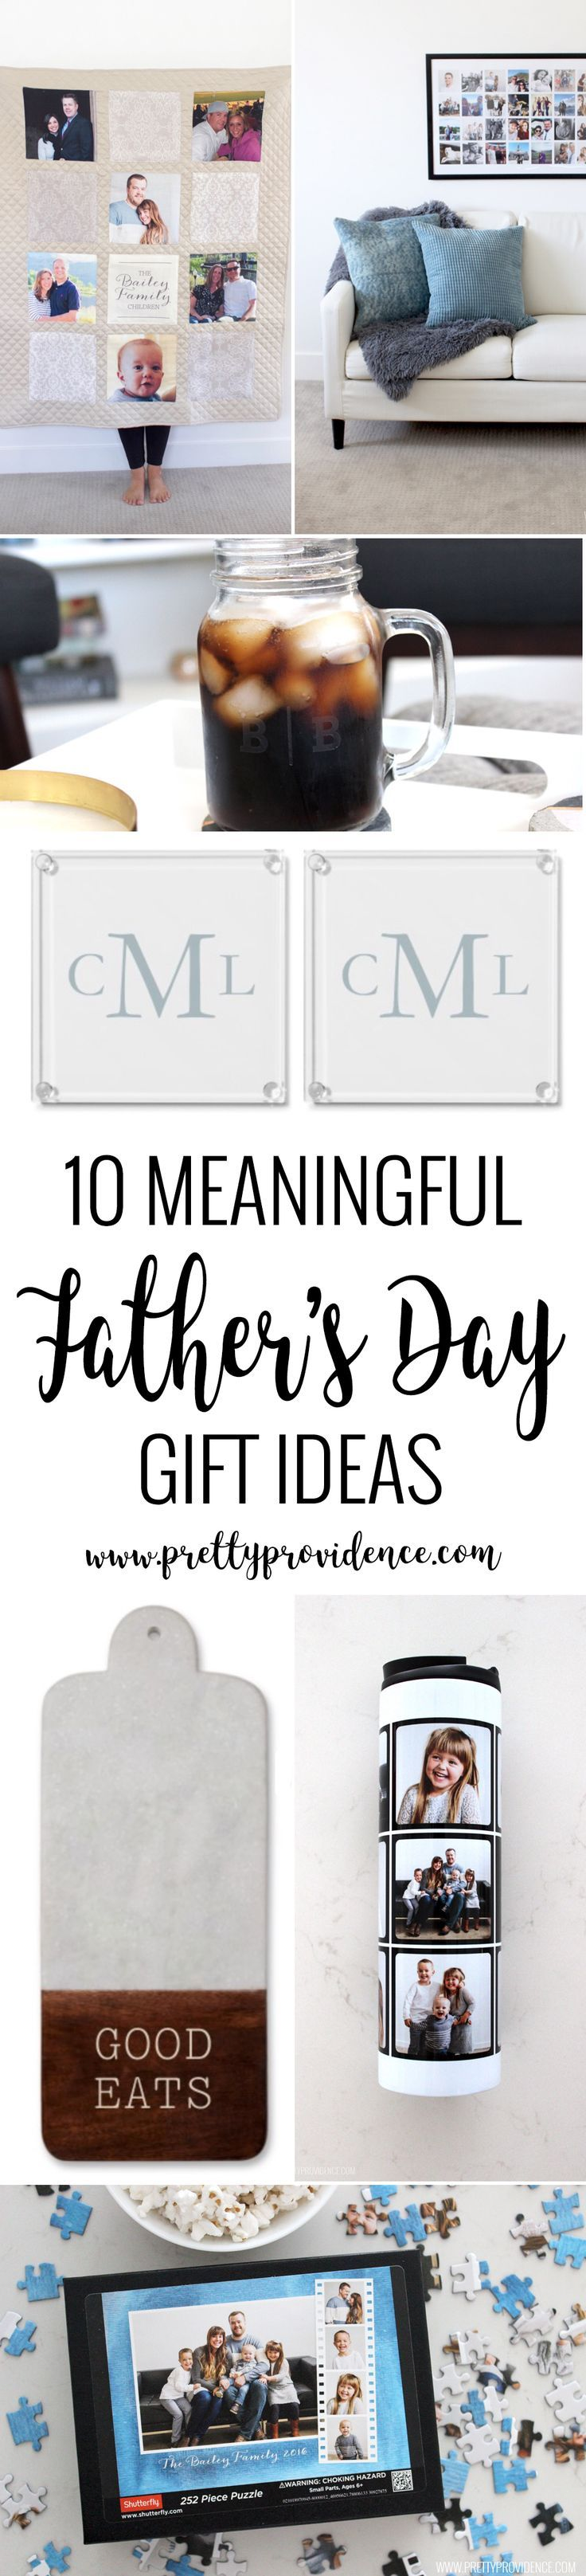 10 amazing personalized fathers day gift ideas